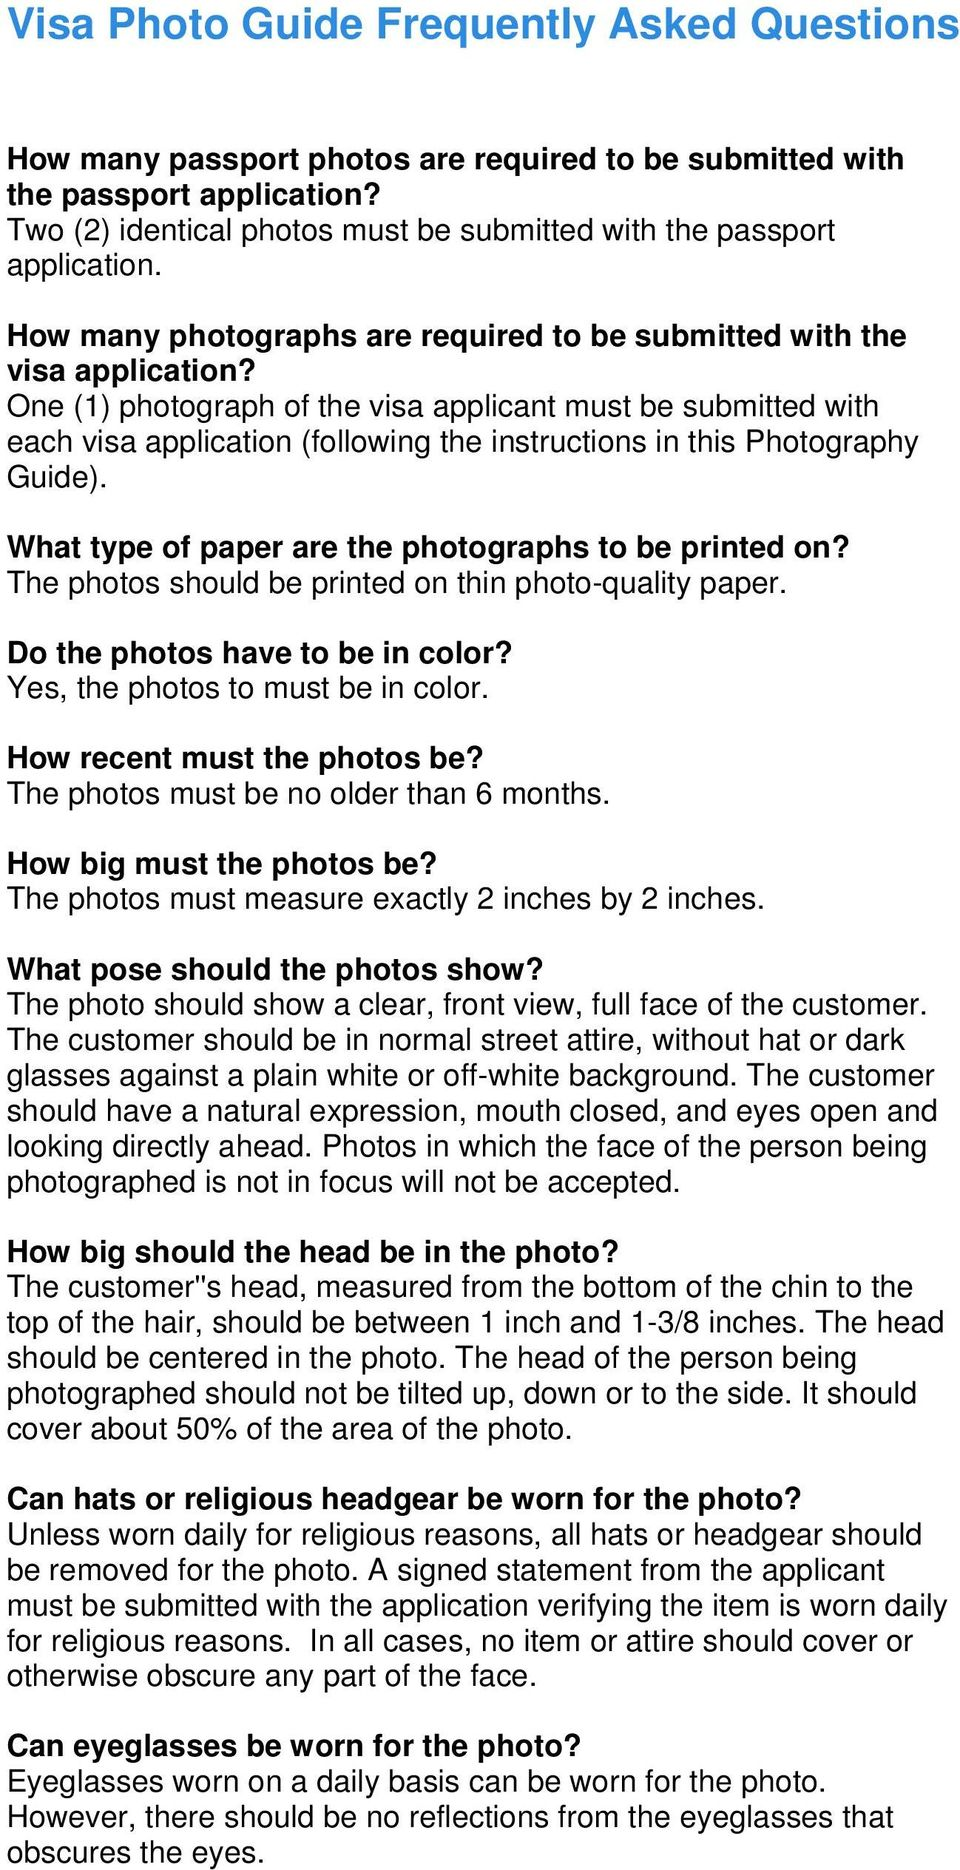 One (1) photograph of the visa applicant must be submitted with each visa application (following the instructions in this Photography Guide). What type of paper are the photographs to be printed on?